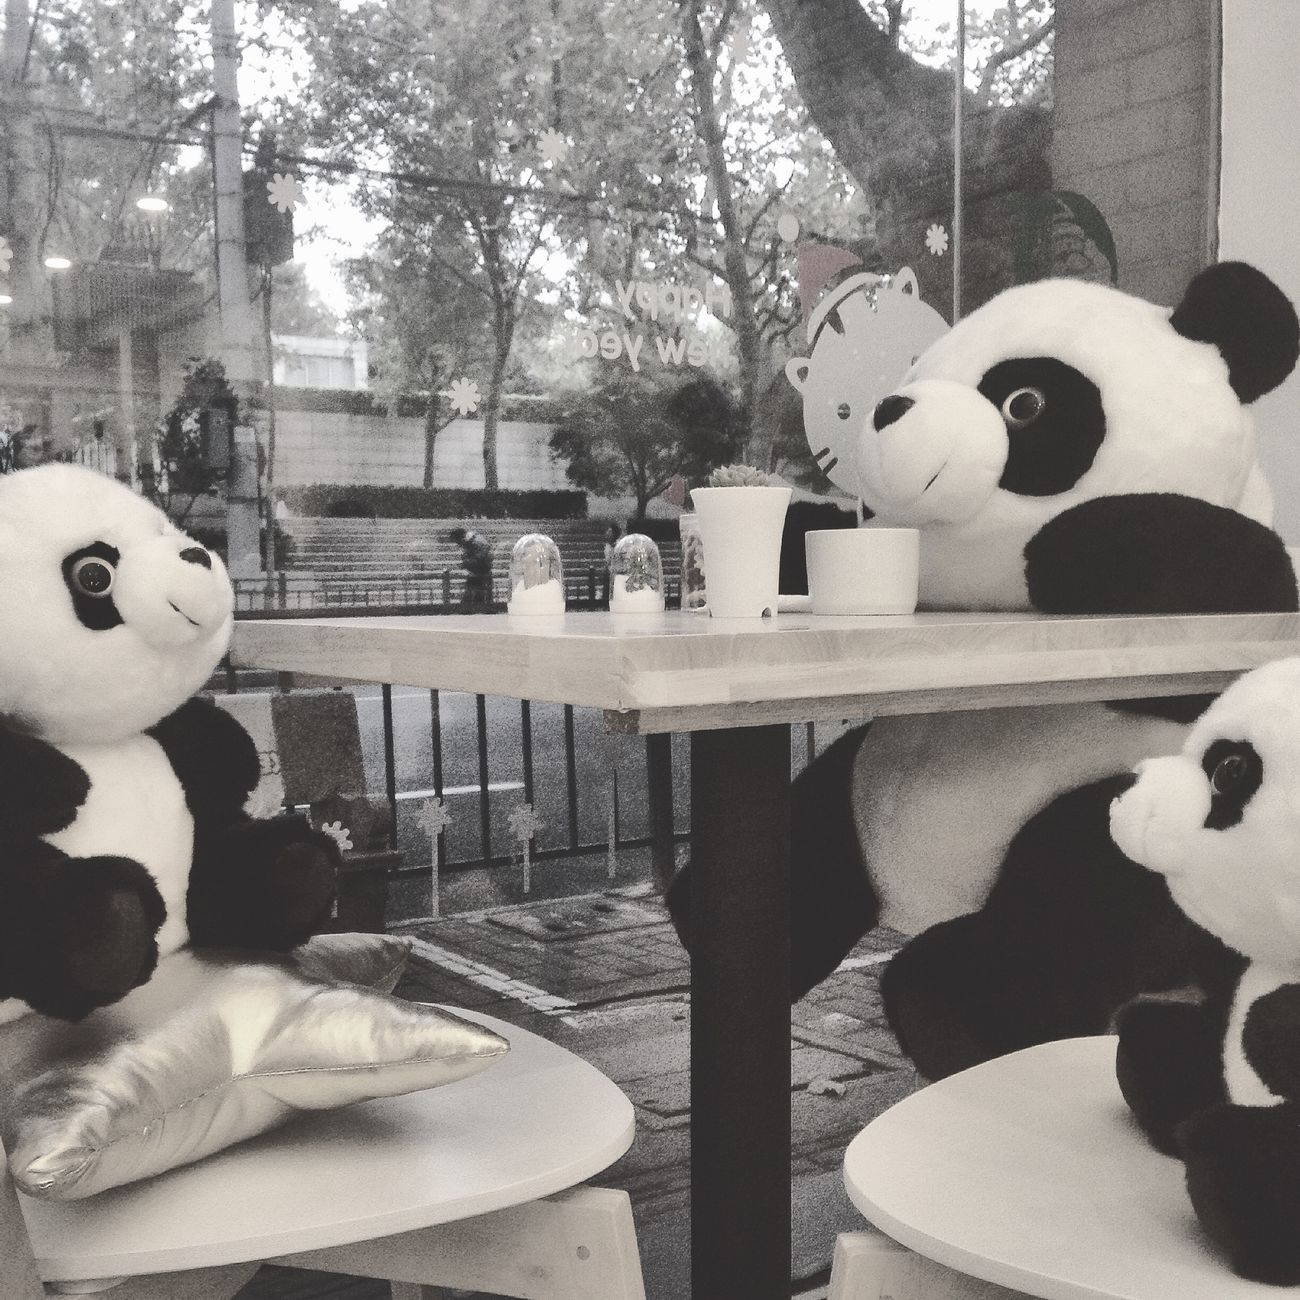 Afternoon Tea party for three Pandalove Shanghai, China